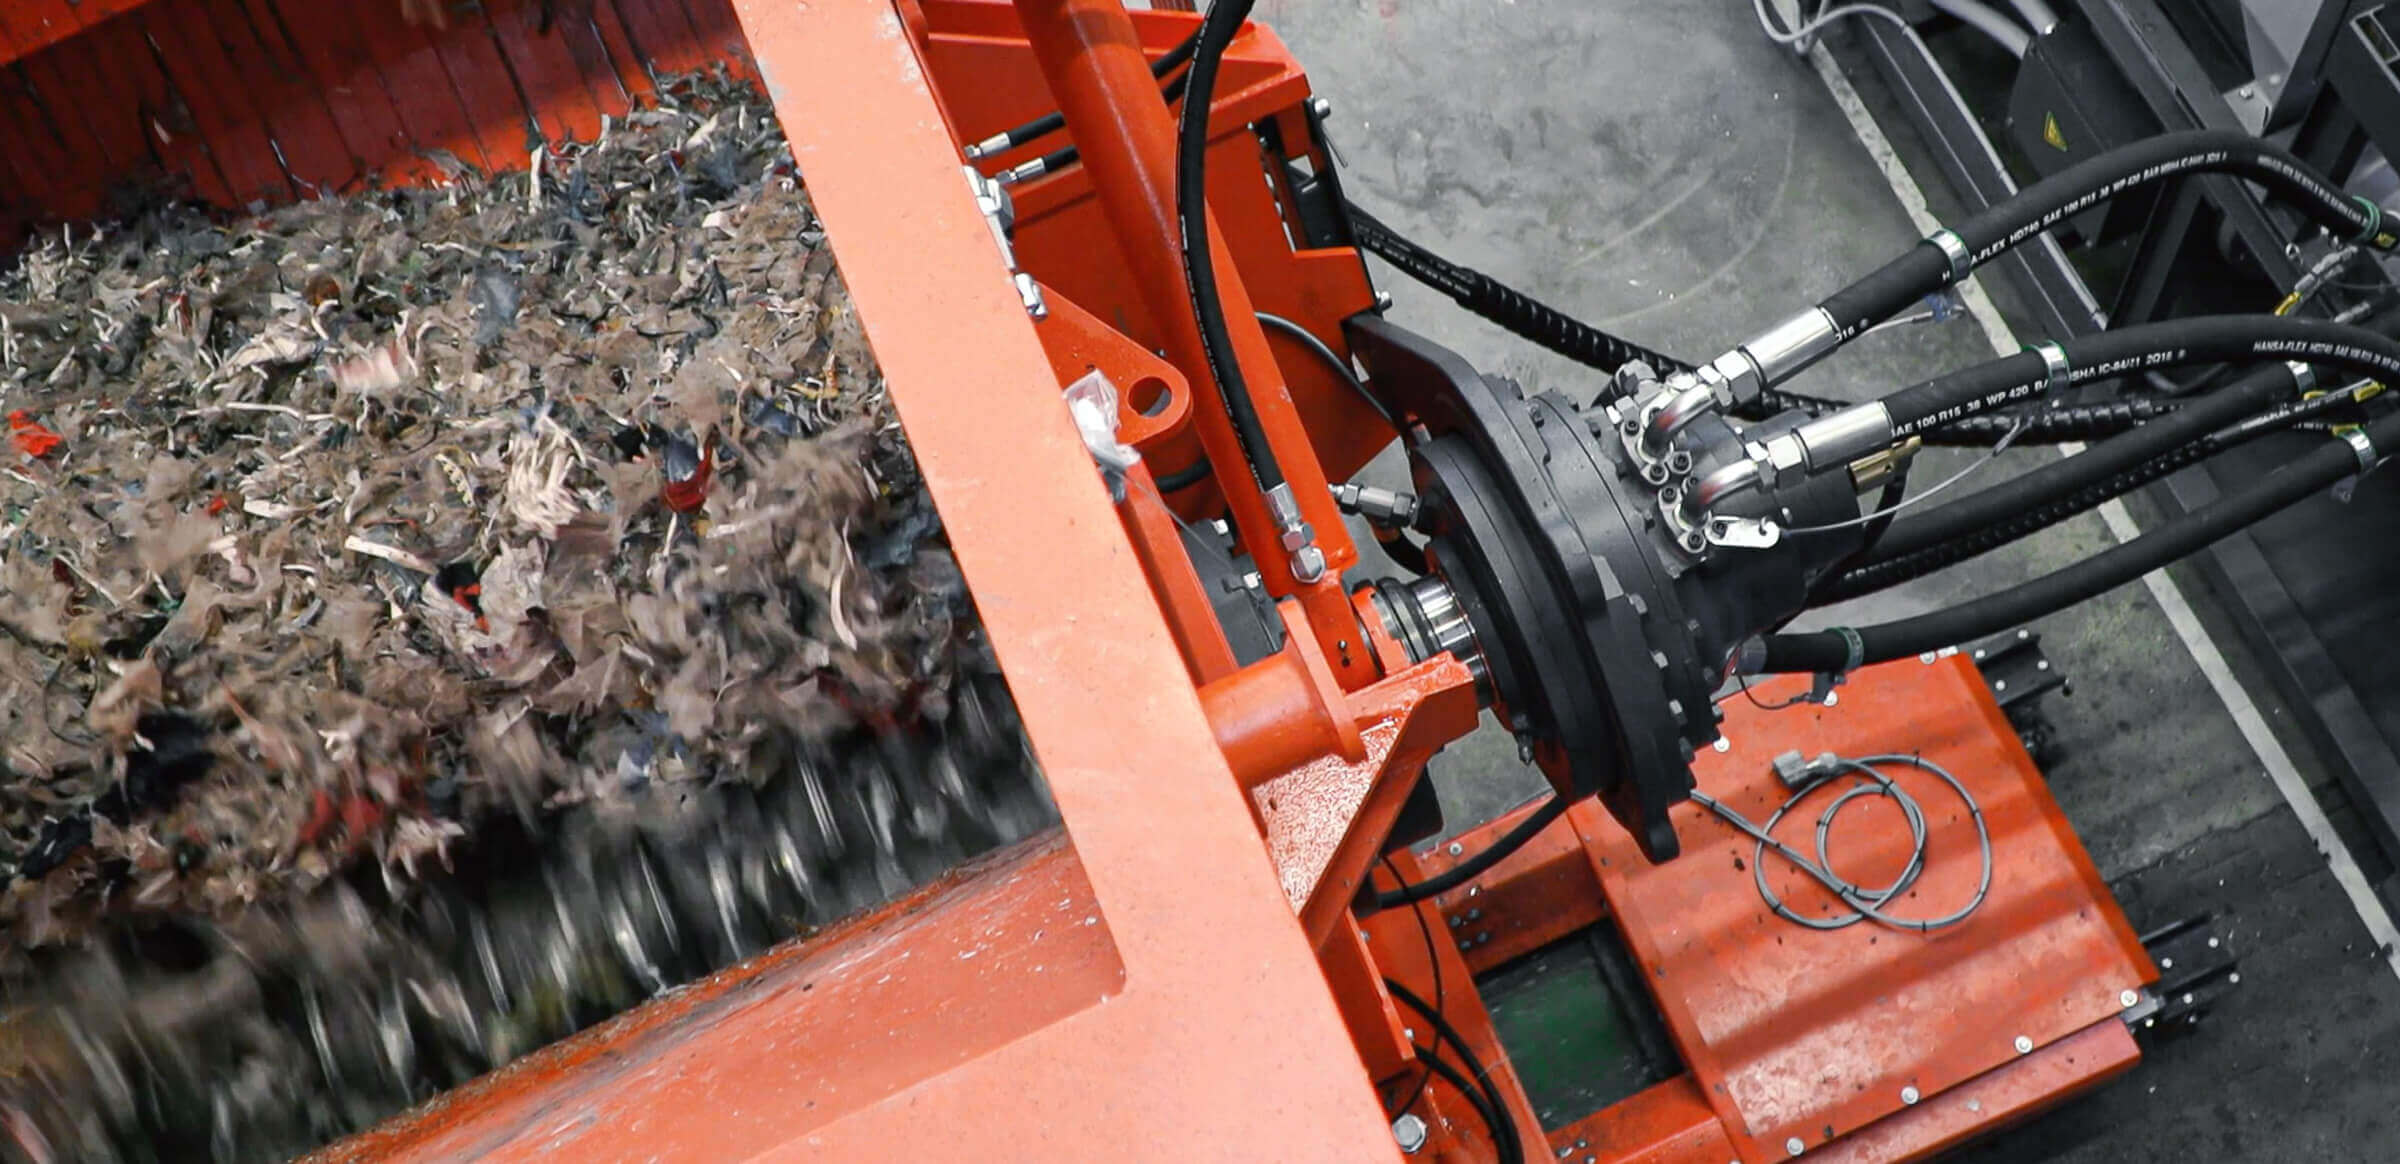 Shredding pulper ropes with shredders equipped with Hägglunds hydraulic drive